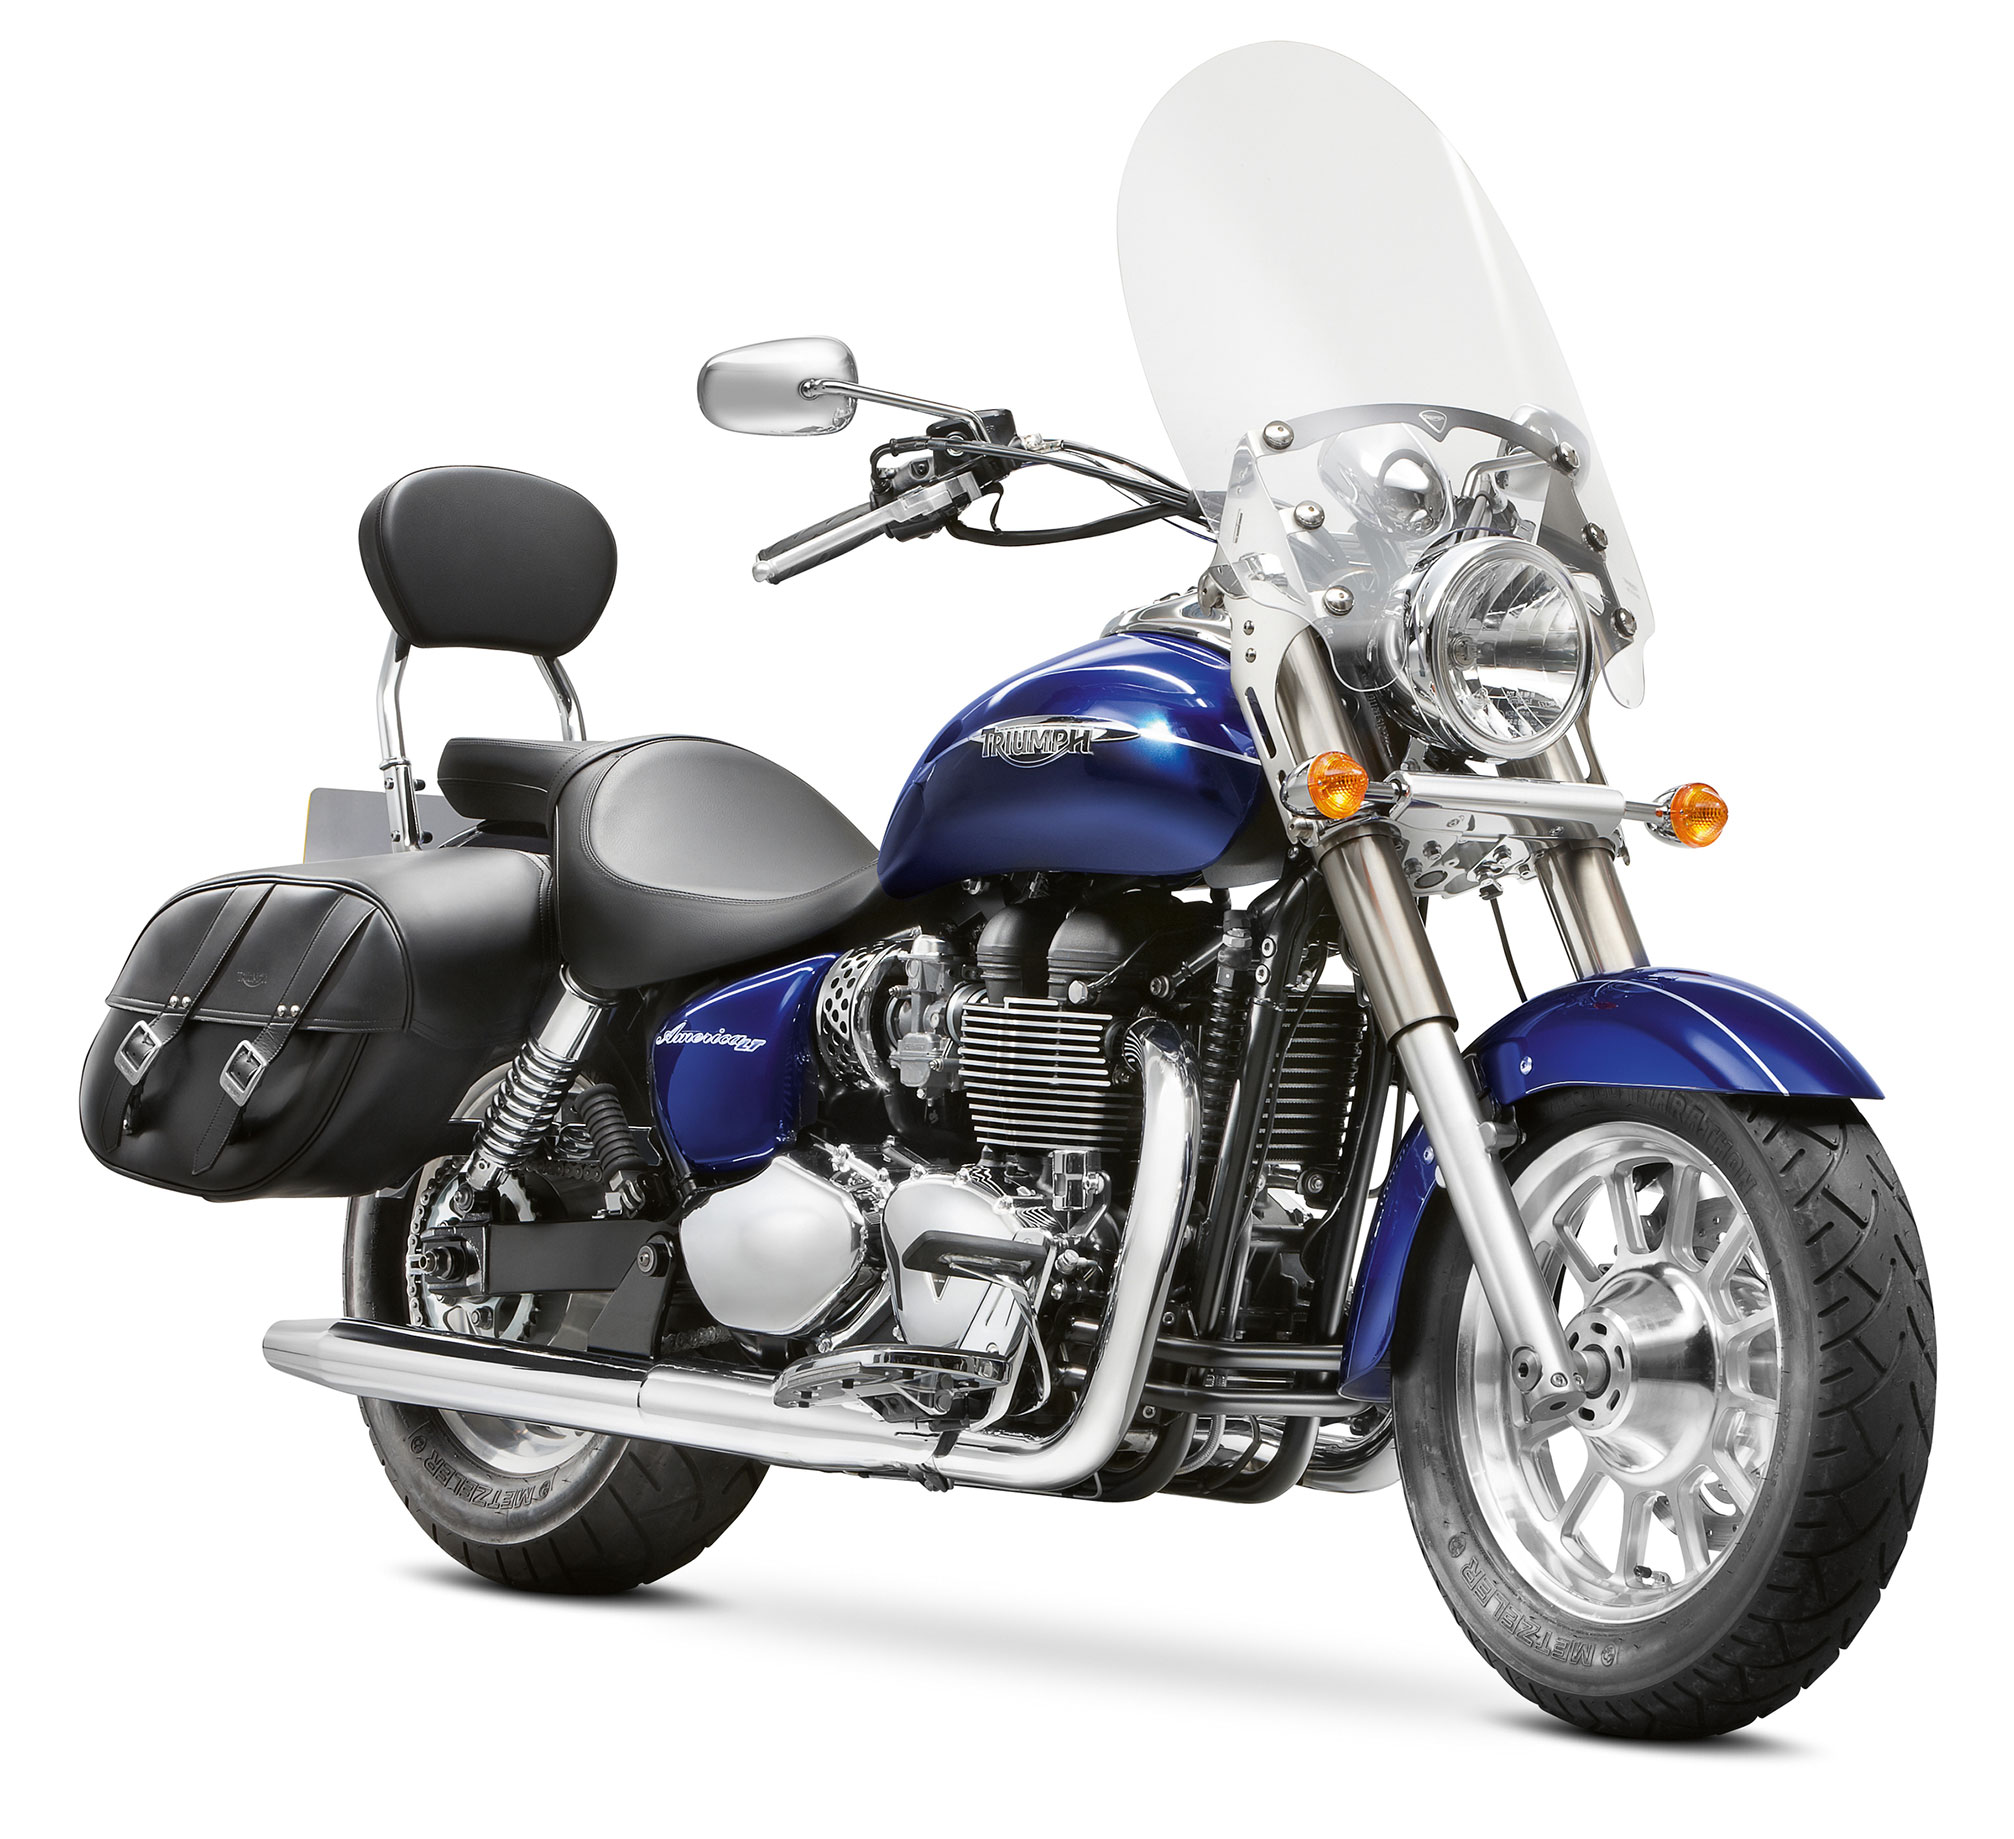 Terrific 2014 Triumph America Lt Review Caraccident5 Cool Chair Designs And Ideas Caraccident5Info